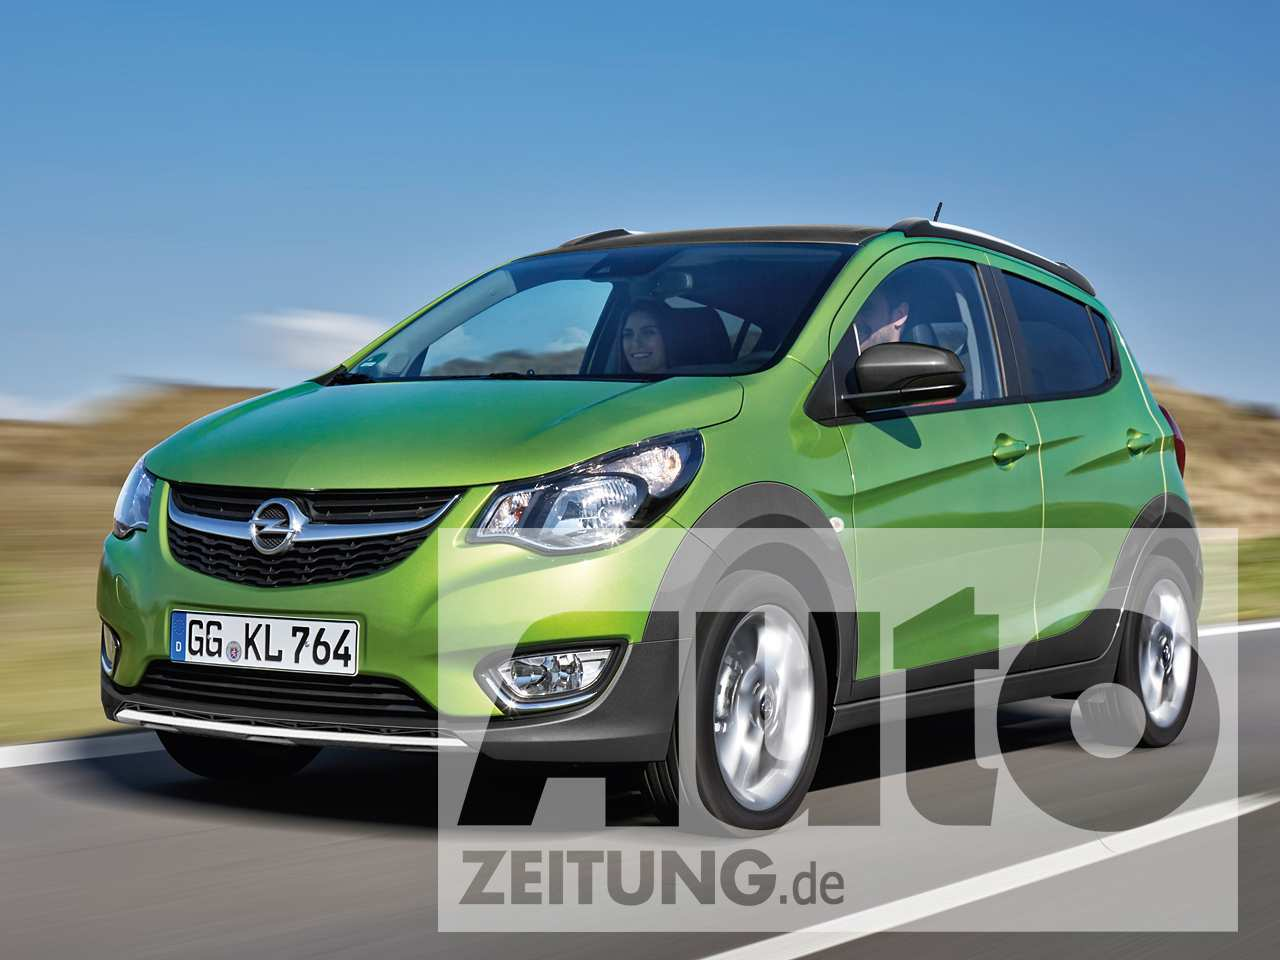 96 Concept of Nouvelle Opel Karl 2020 Interior with Nouvelle Opel Karl 2020